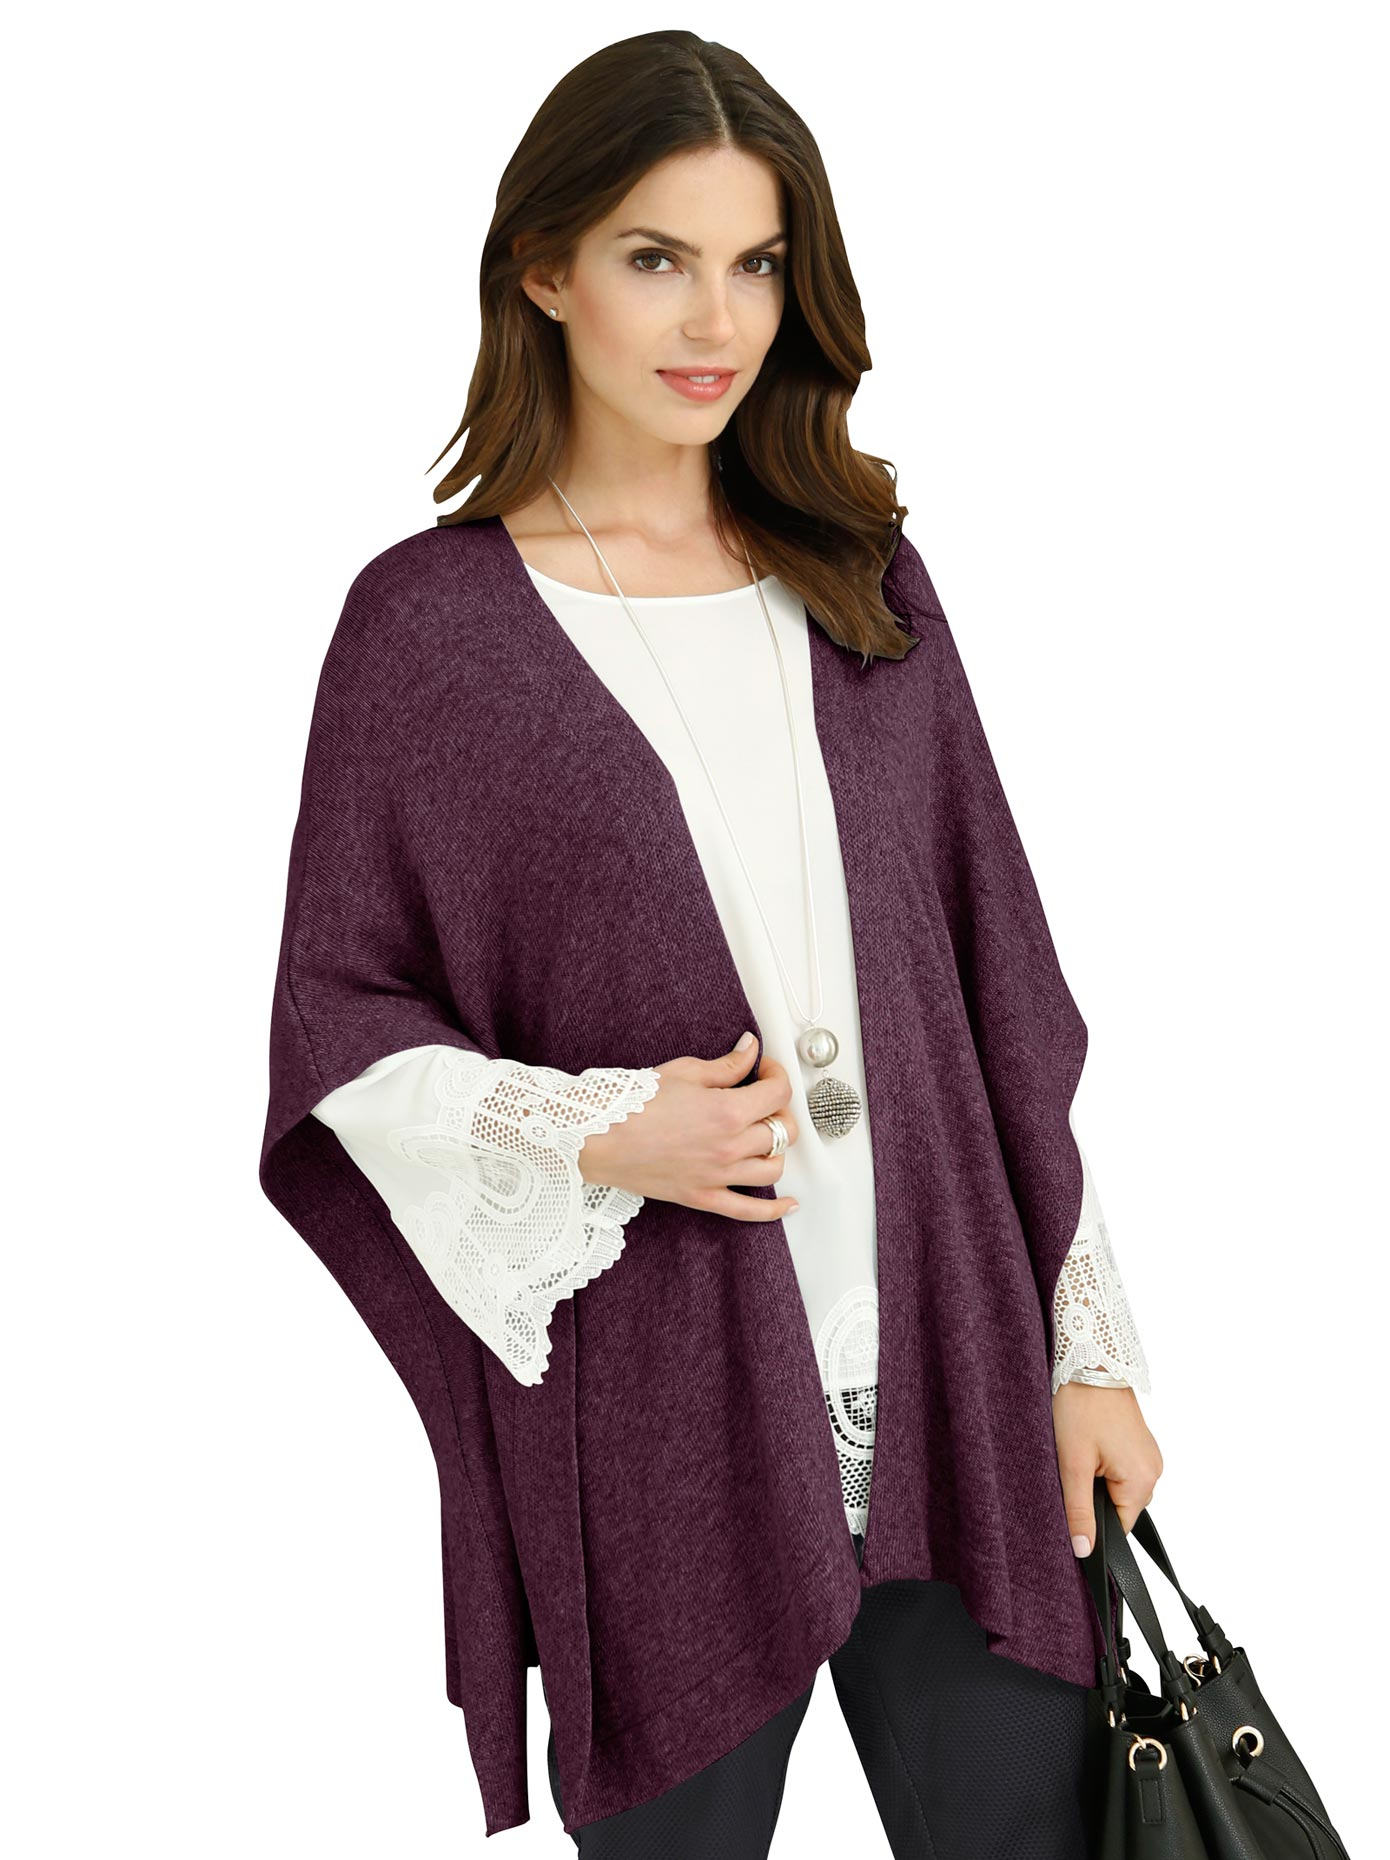 Jacken - Fair Lady Damen Strickponcho rot  - Onlineshop Witt Weiden